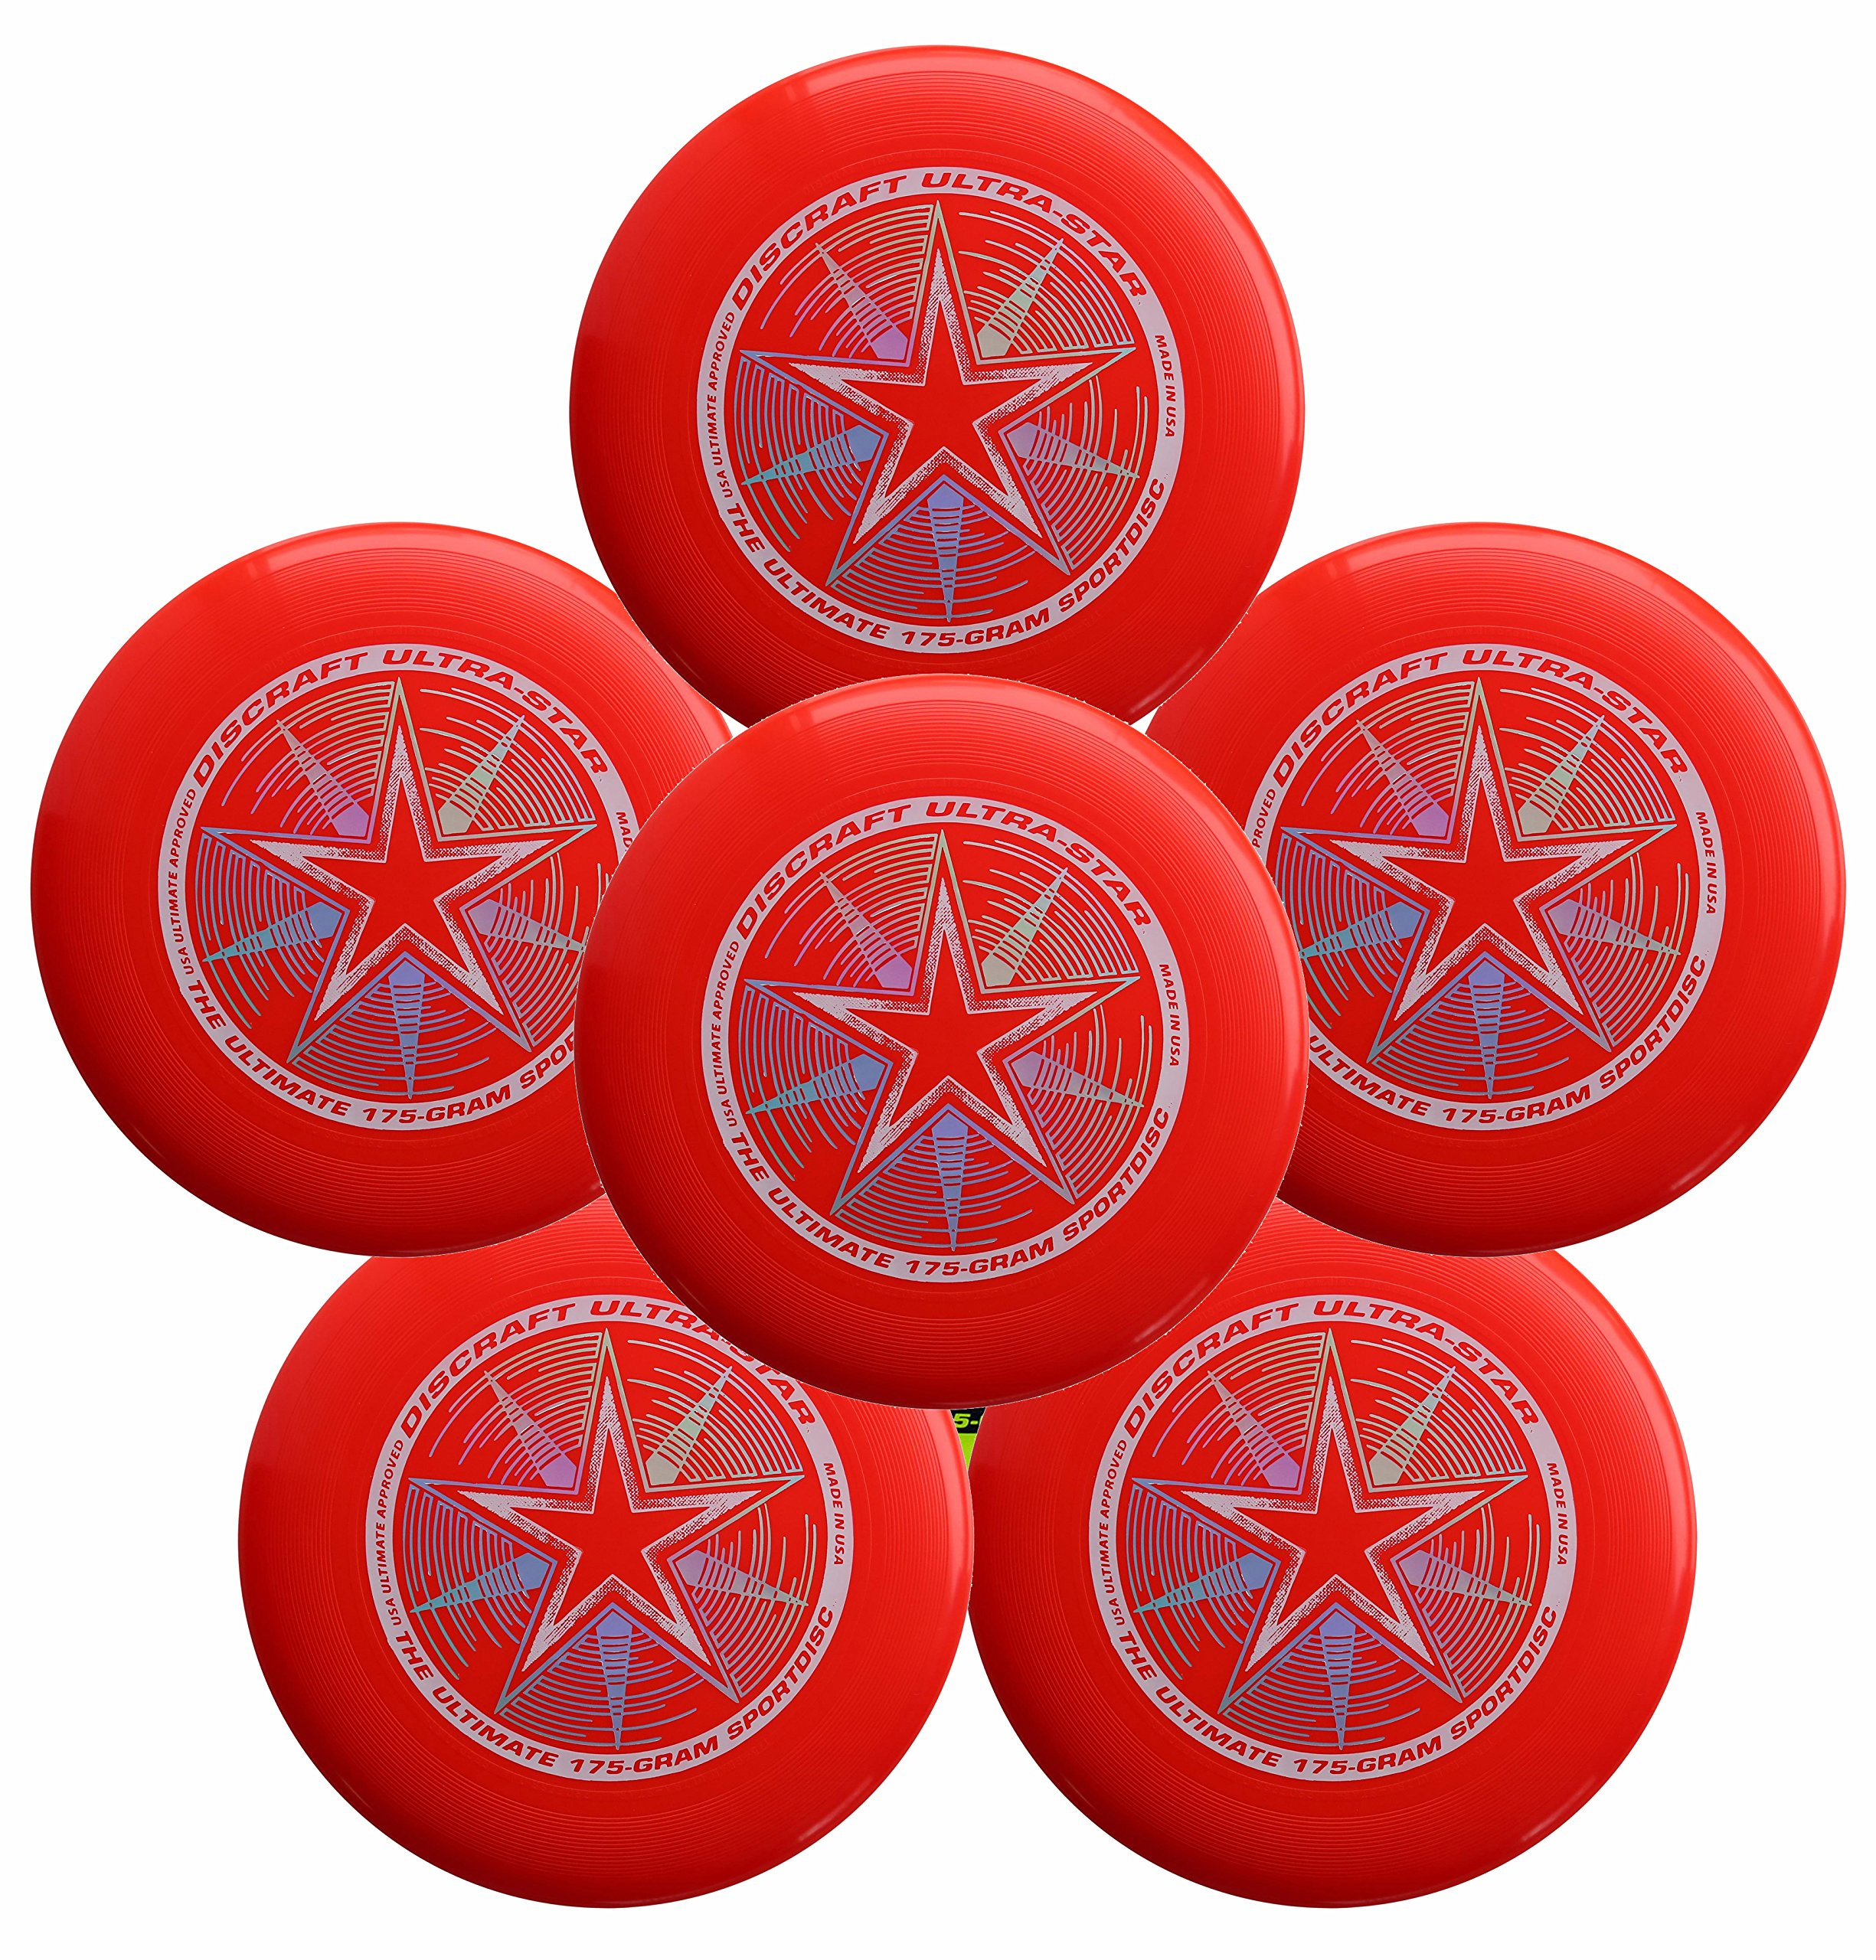 Discraft Ultra-Star 175g Ultimate Frisbee Sport Disc (6 Pack) Bright Red